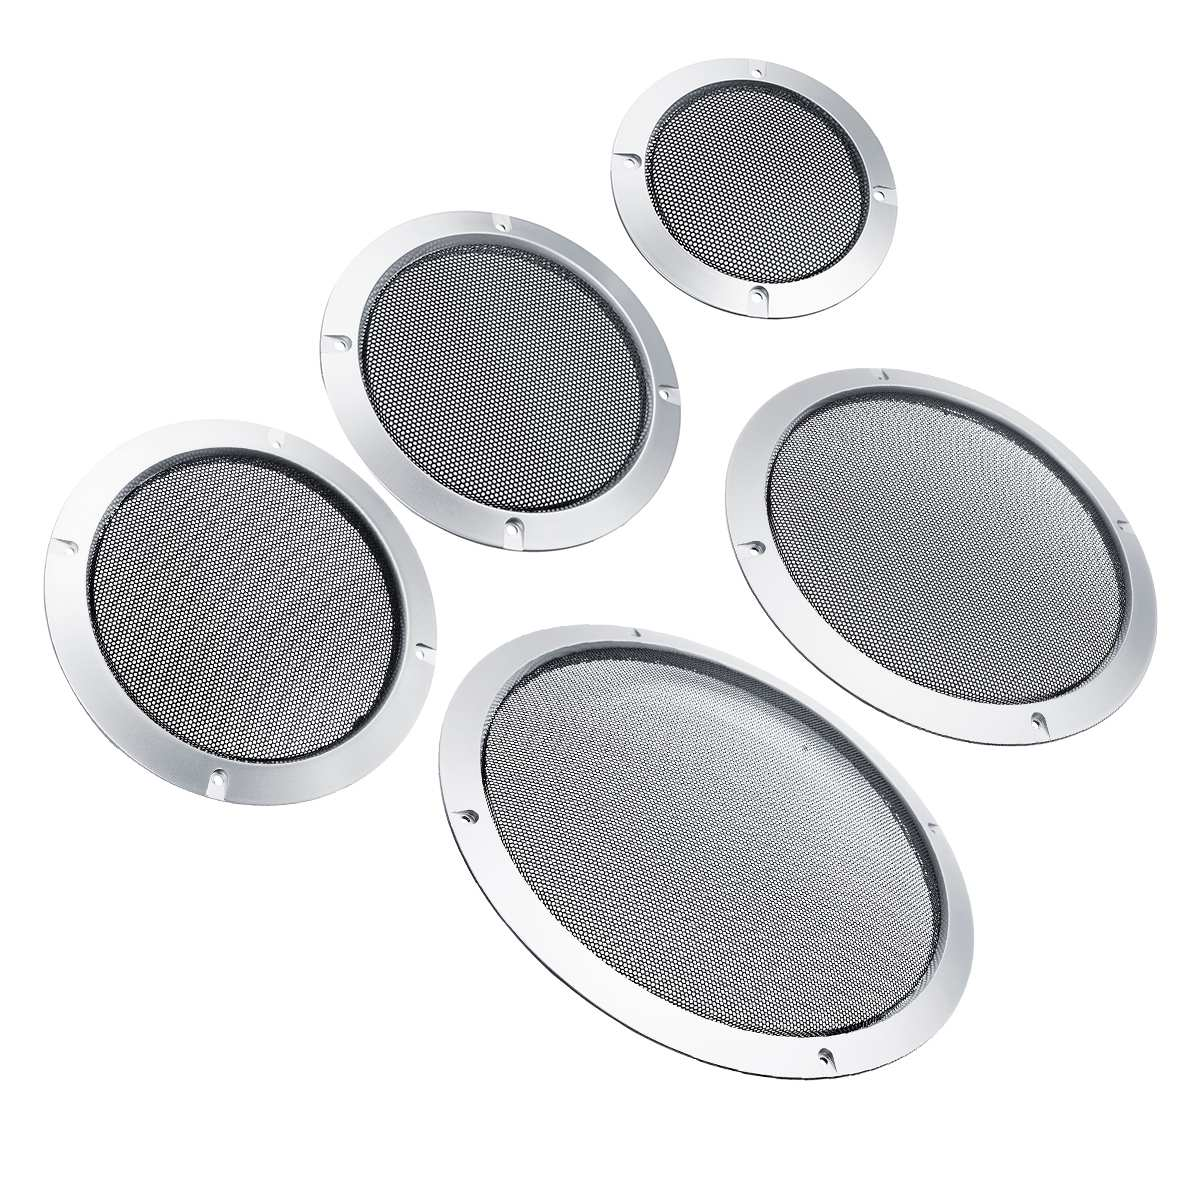 1ps 6.5 inch Car audio protection grille Car Speaker decorative circle Net cover